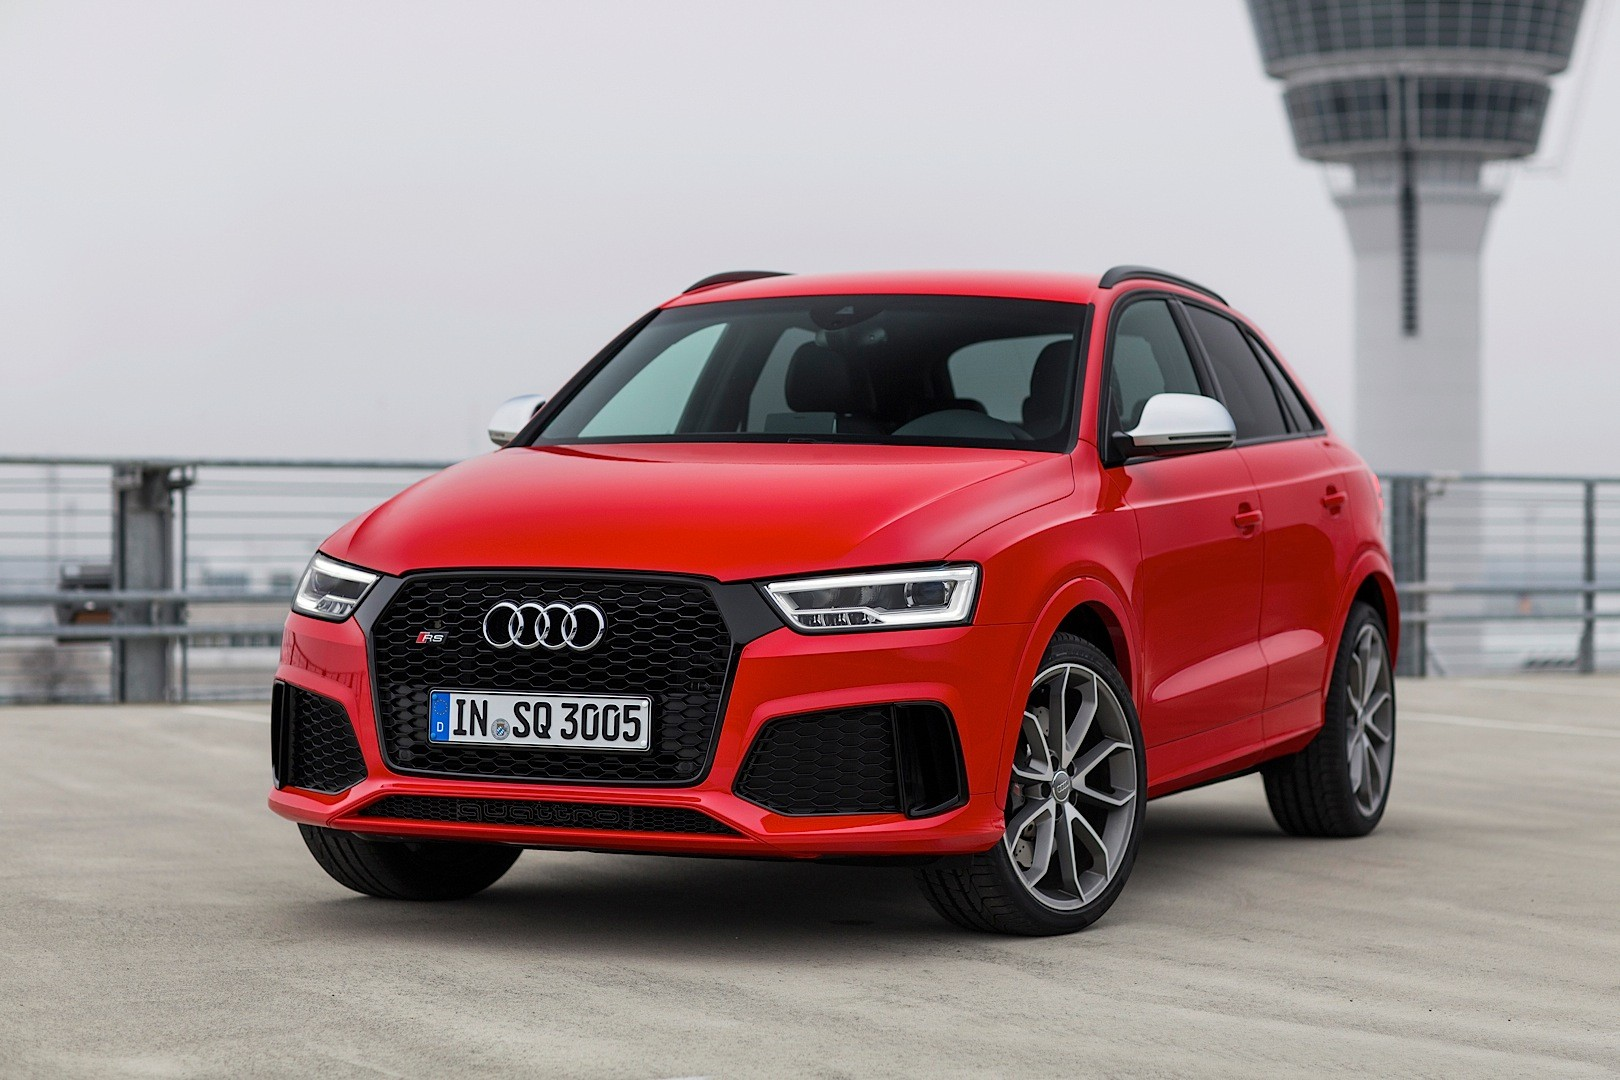 Audi Q3 S Line Edition >> Audi Shares New 2015 Q3 and RS Q3 Photos: Fresh Colors, New Trim Pieces - autoevolution